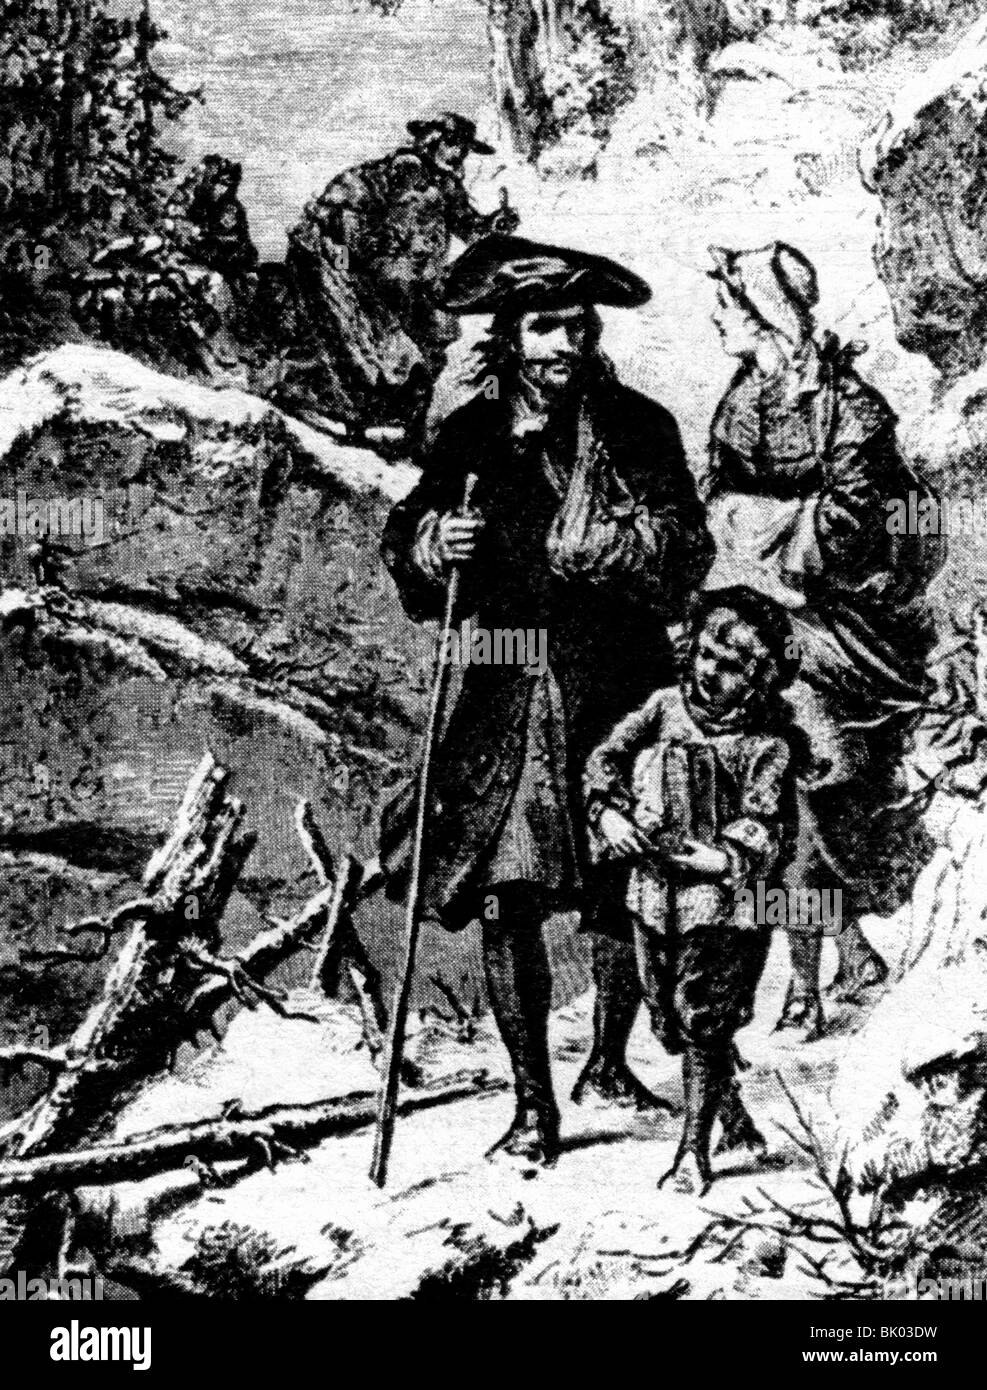 goegraphy / travel, France, people, huguenots, expulsion 1685 - 1730, Artist's Copyright has not to be cleared - Stock Image